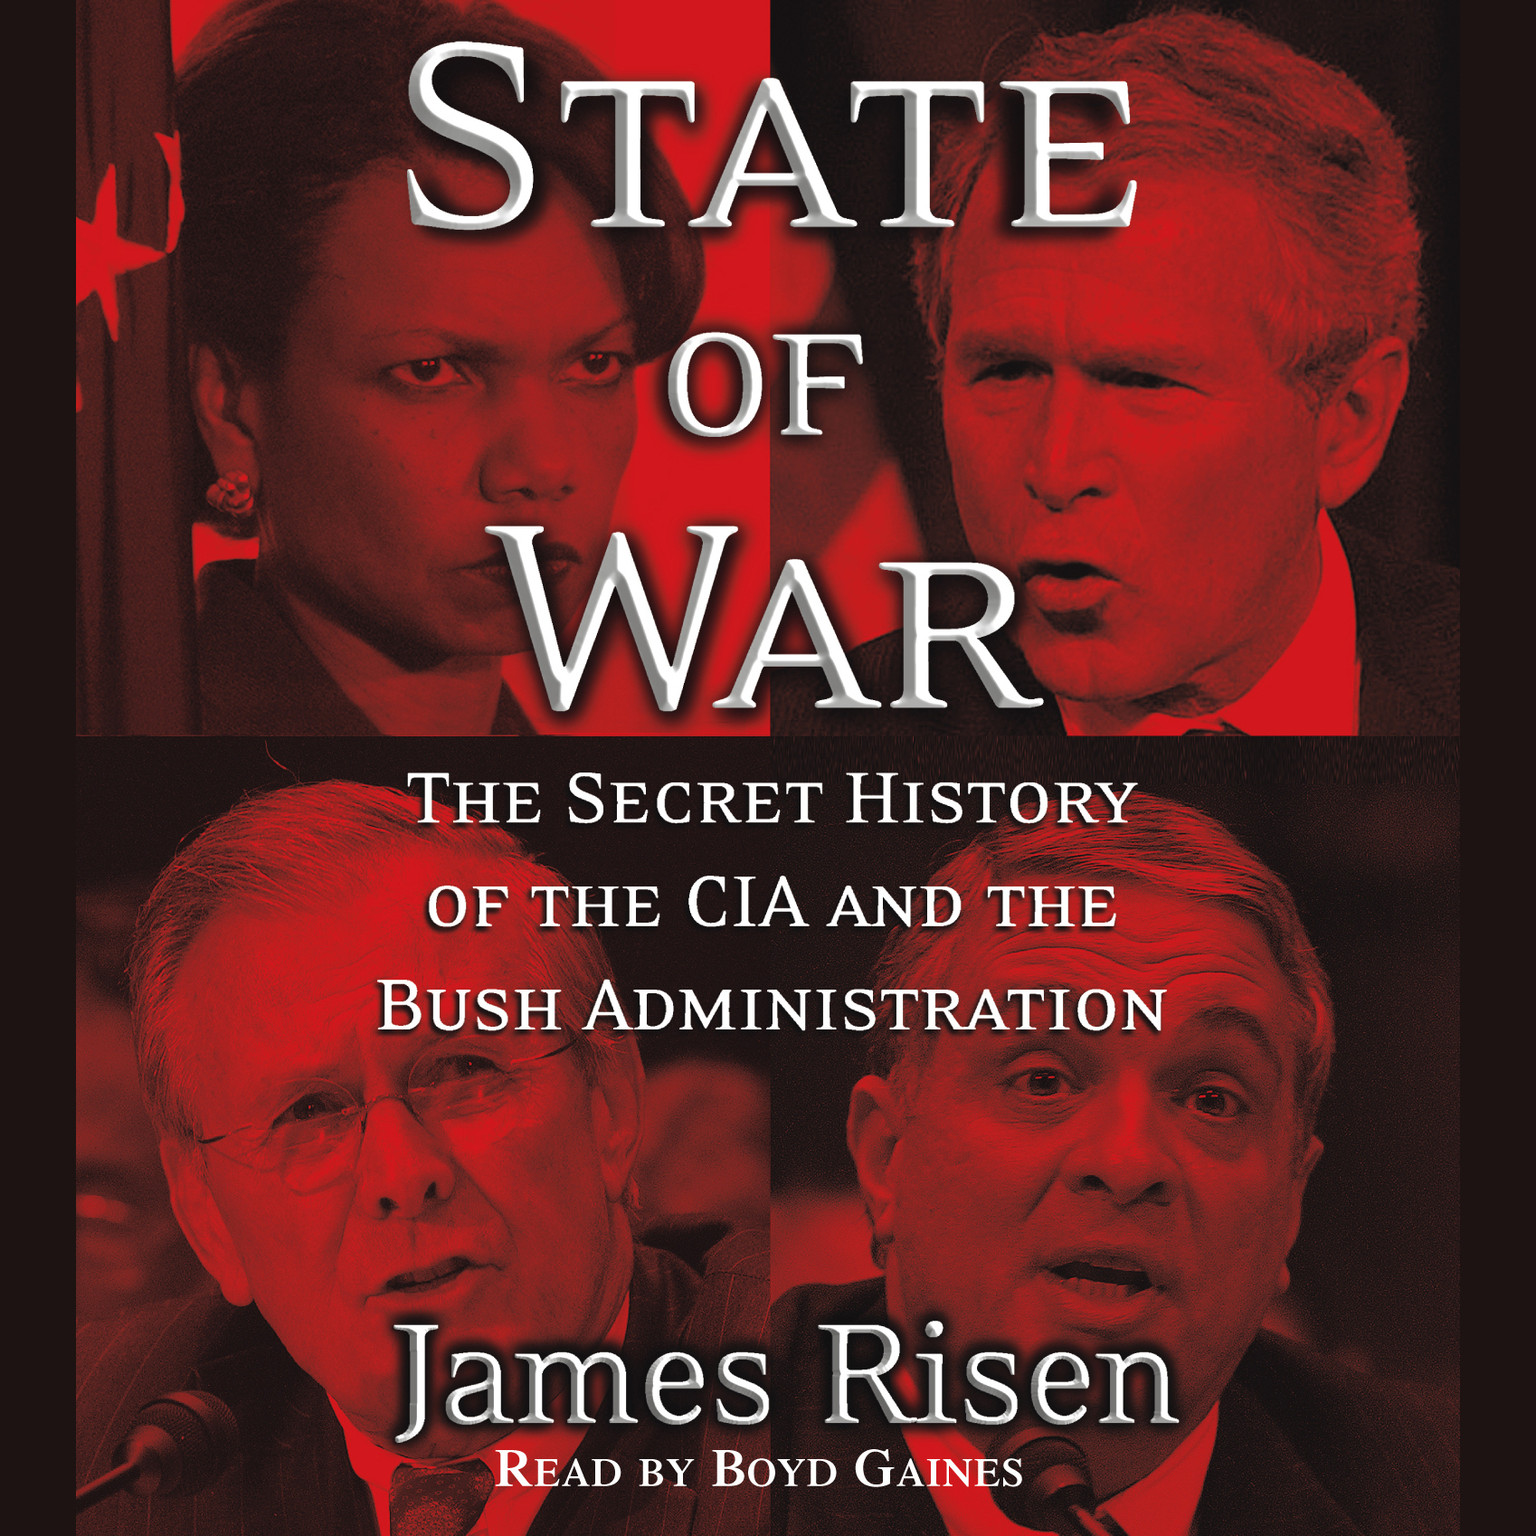 Printable State of War: The Secret History of the CIA and the Bush Administration Audiobook Cover Art